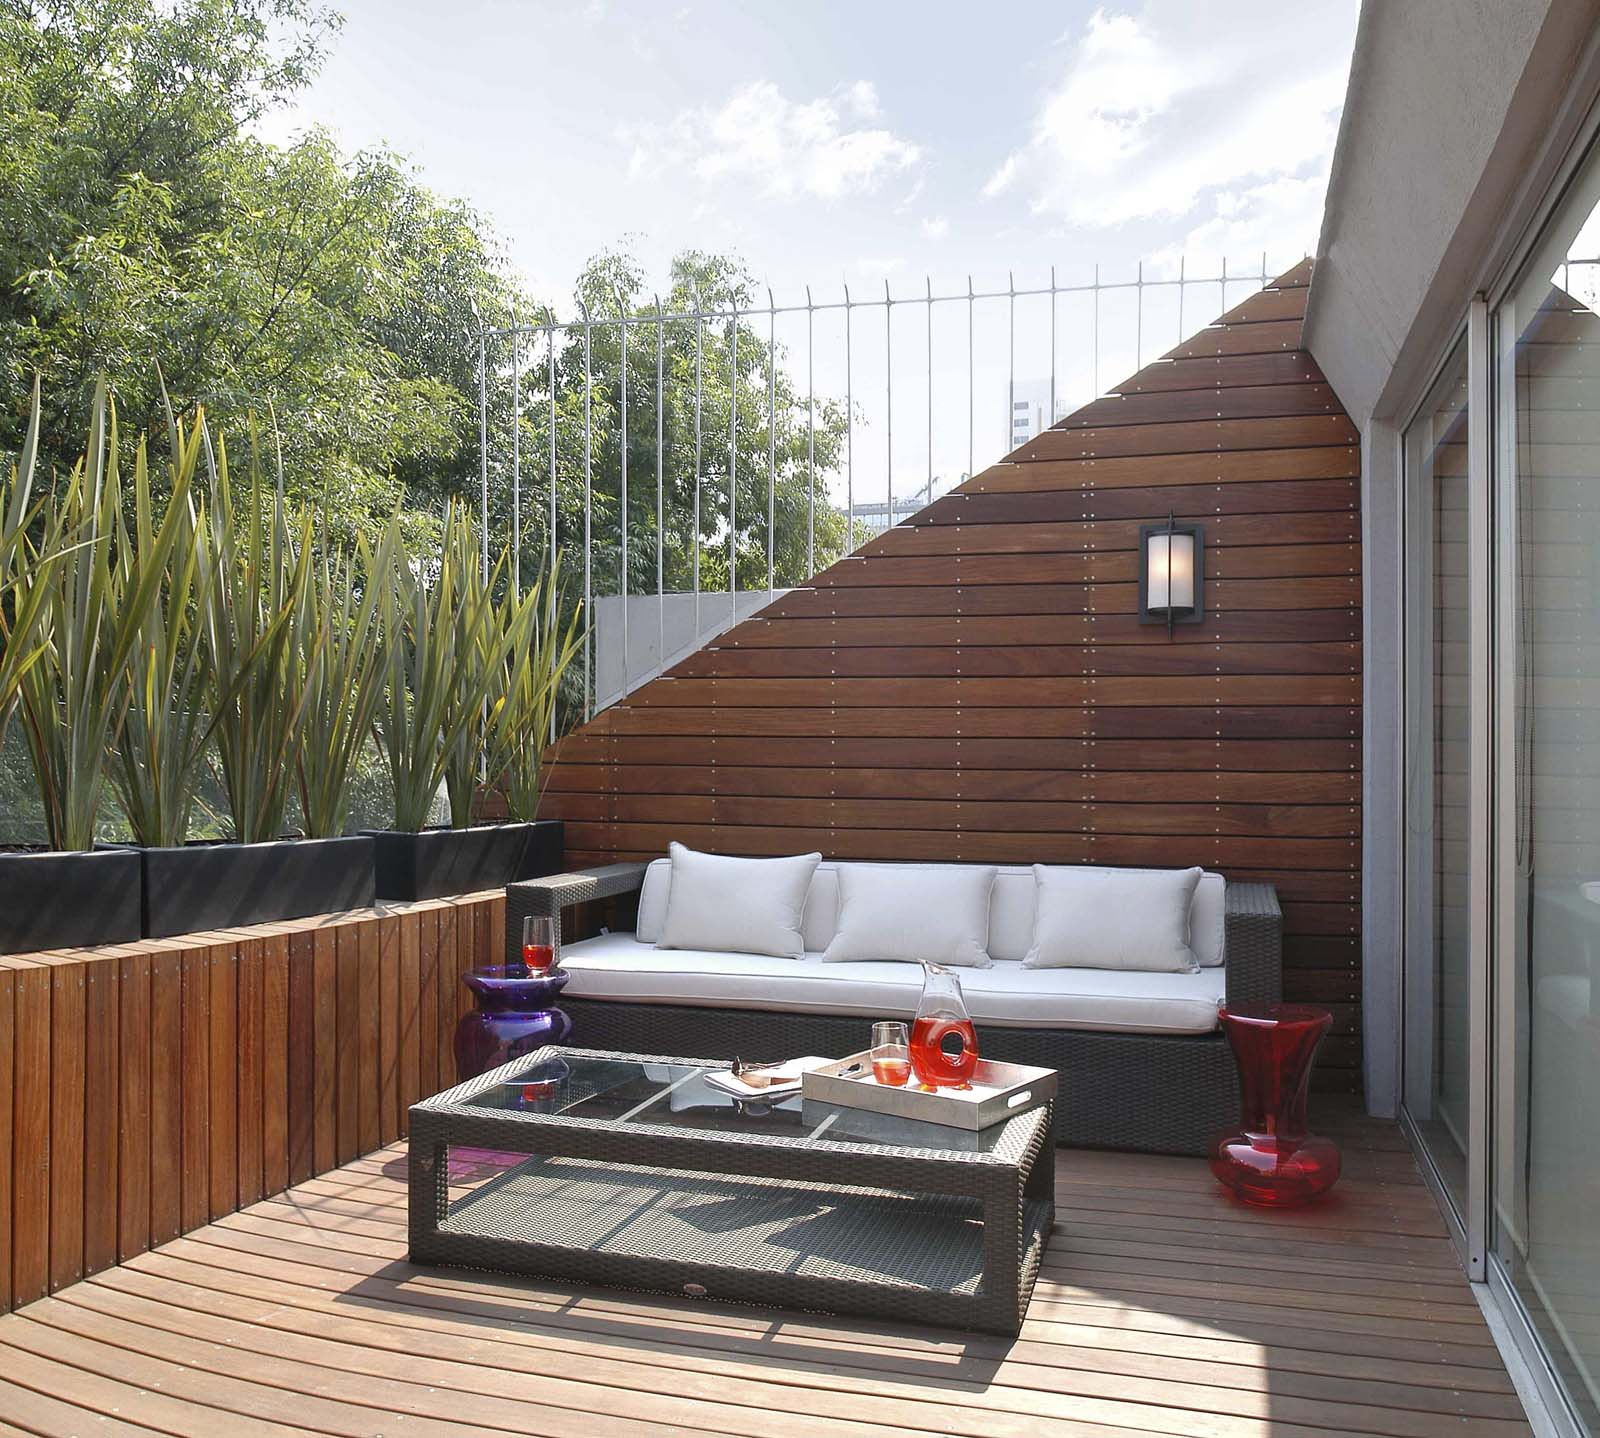 Decoarq arquitectura decorativa for Living de madera para terraza